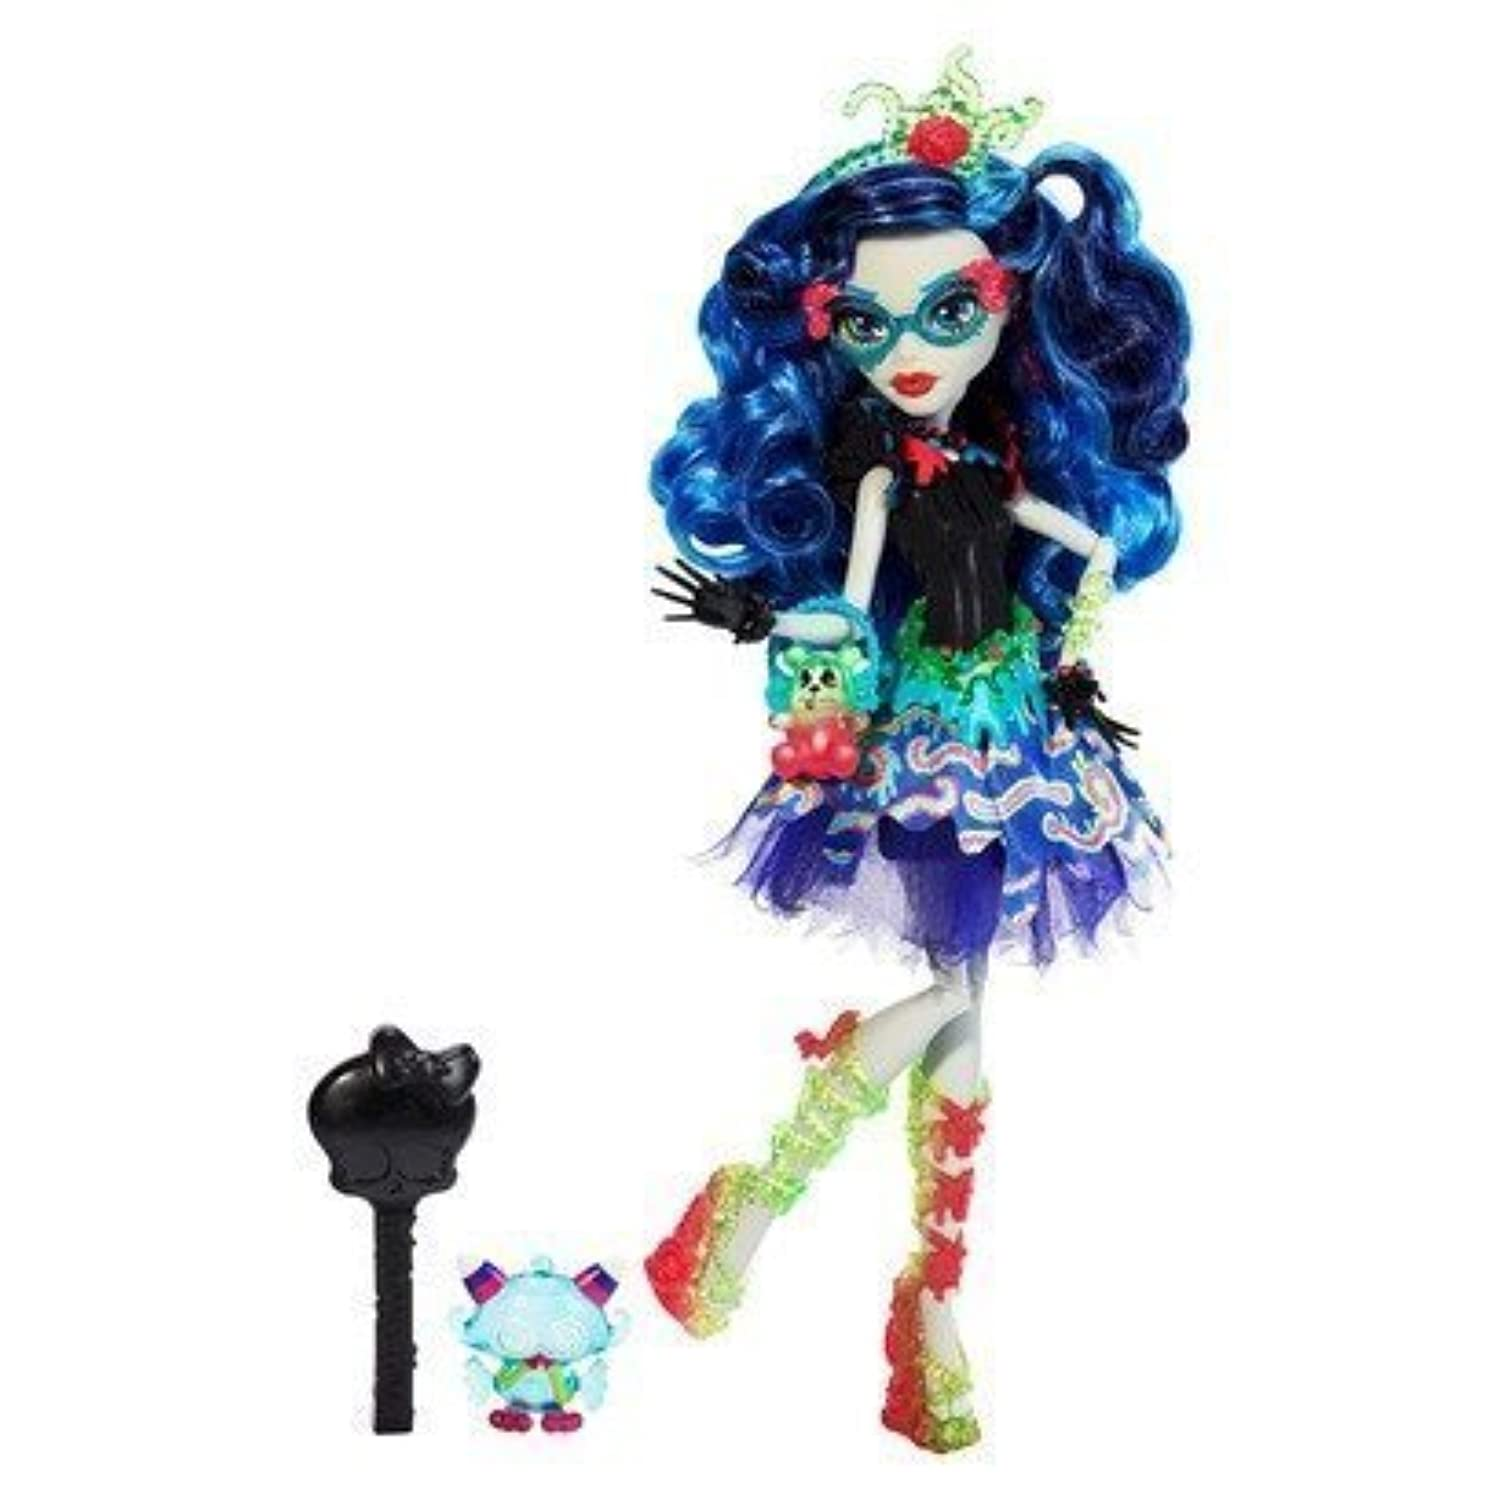 [マテル]Mattel Monster High Sweet Screams Ghoulia Yelps Doll CX229 [並行輸入品]